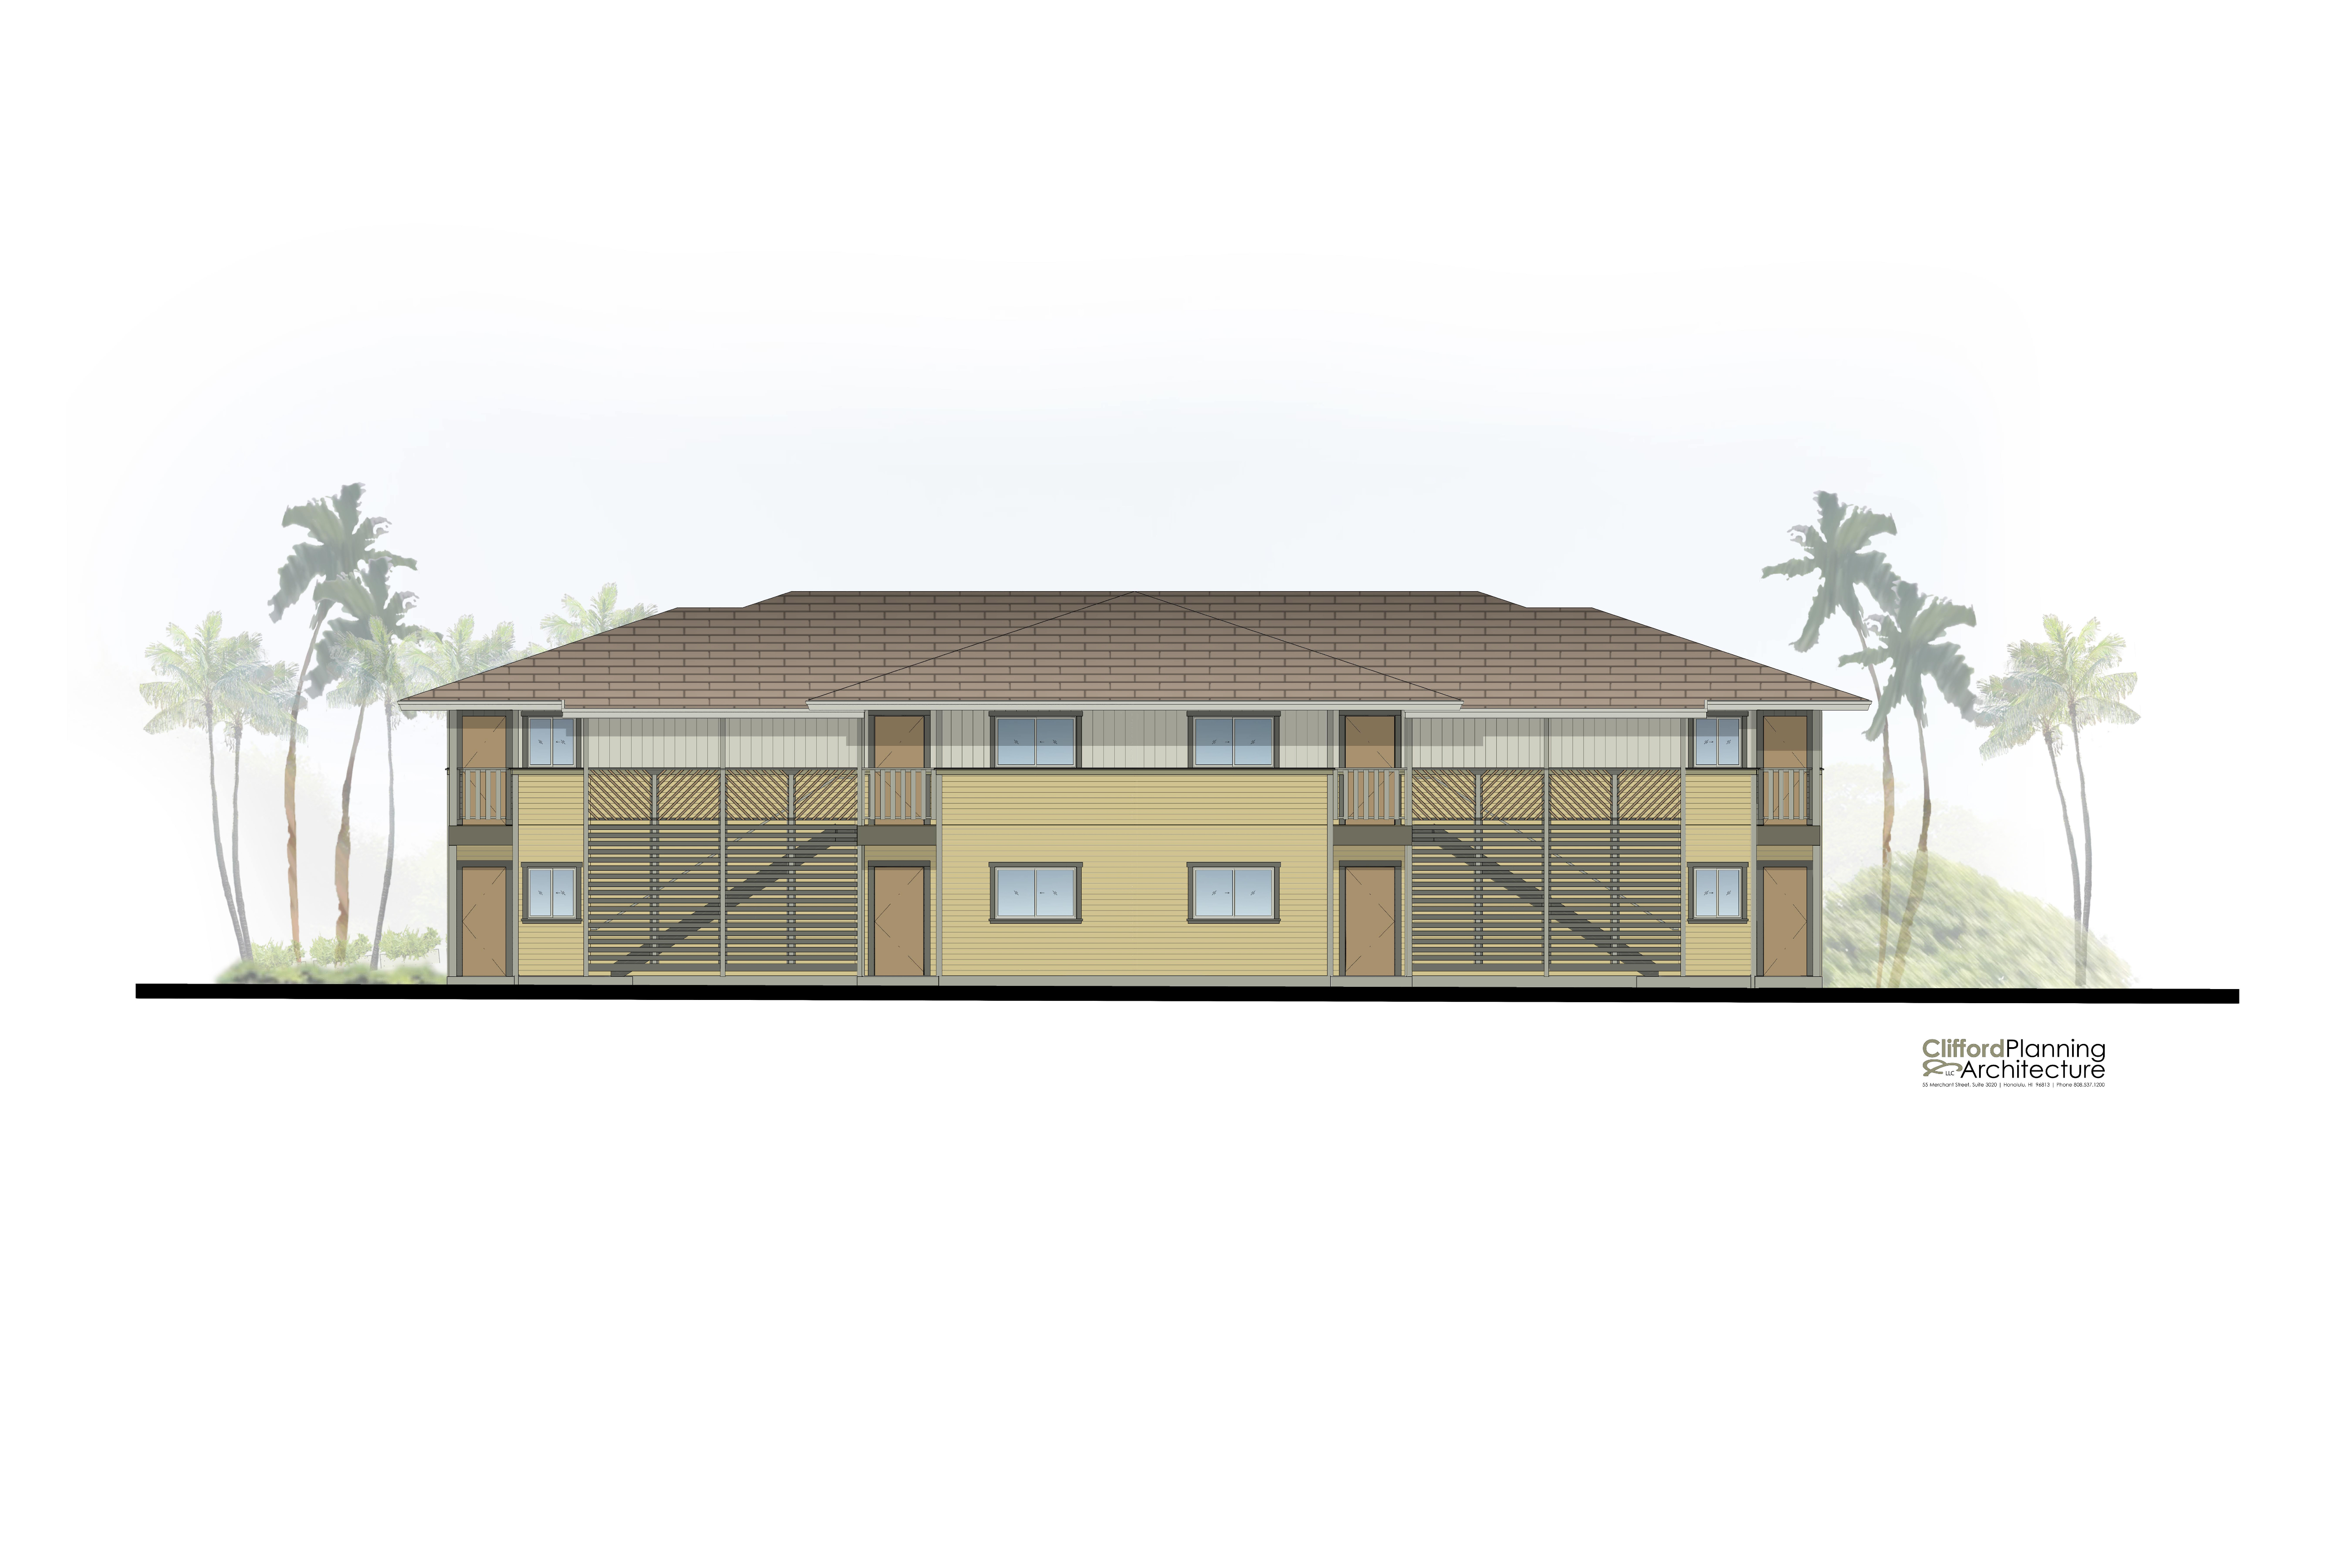 Kulamalu project illustration provided by Clifford Planning & Architecture.